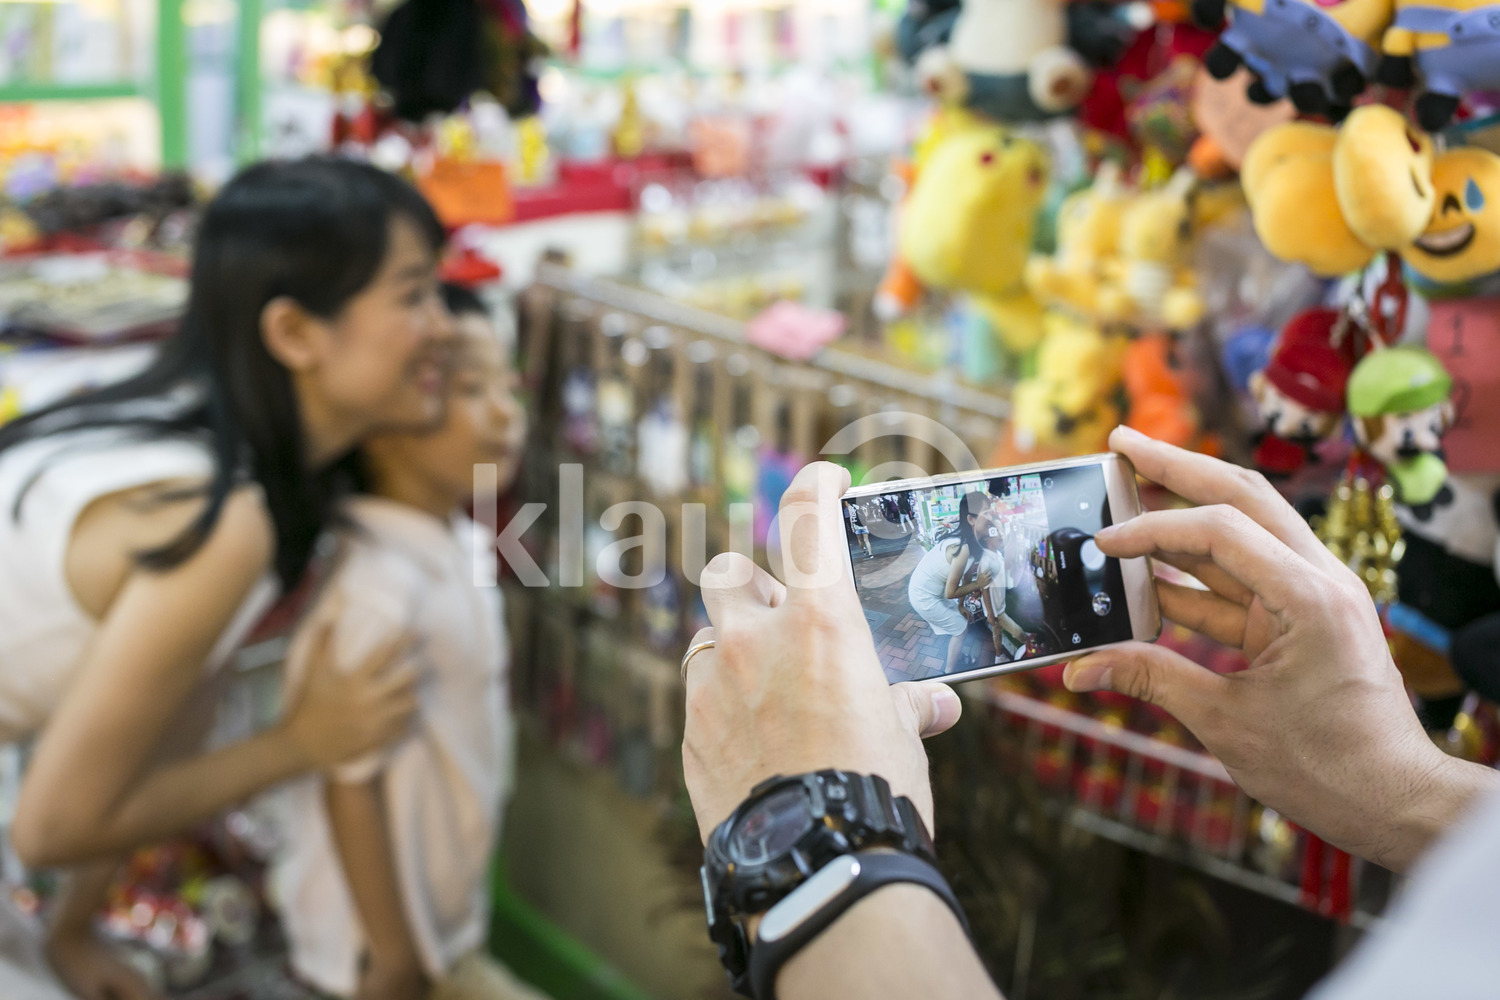 Father takes a photo with his phone in Chinatown